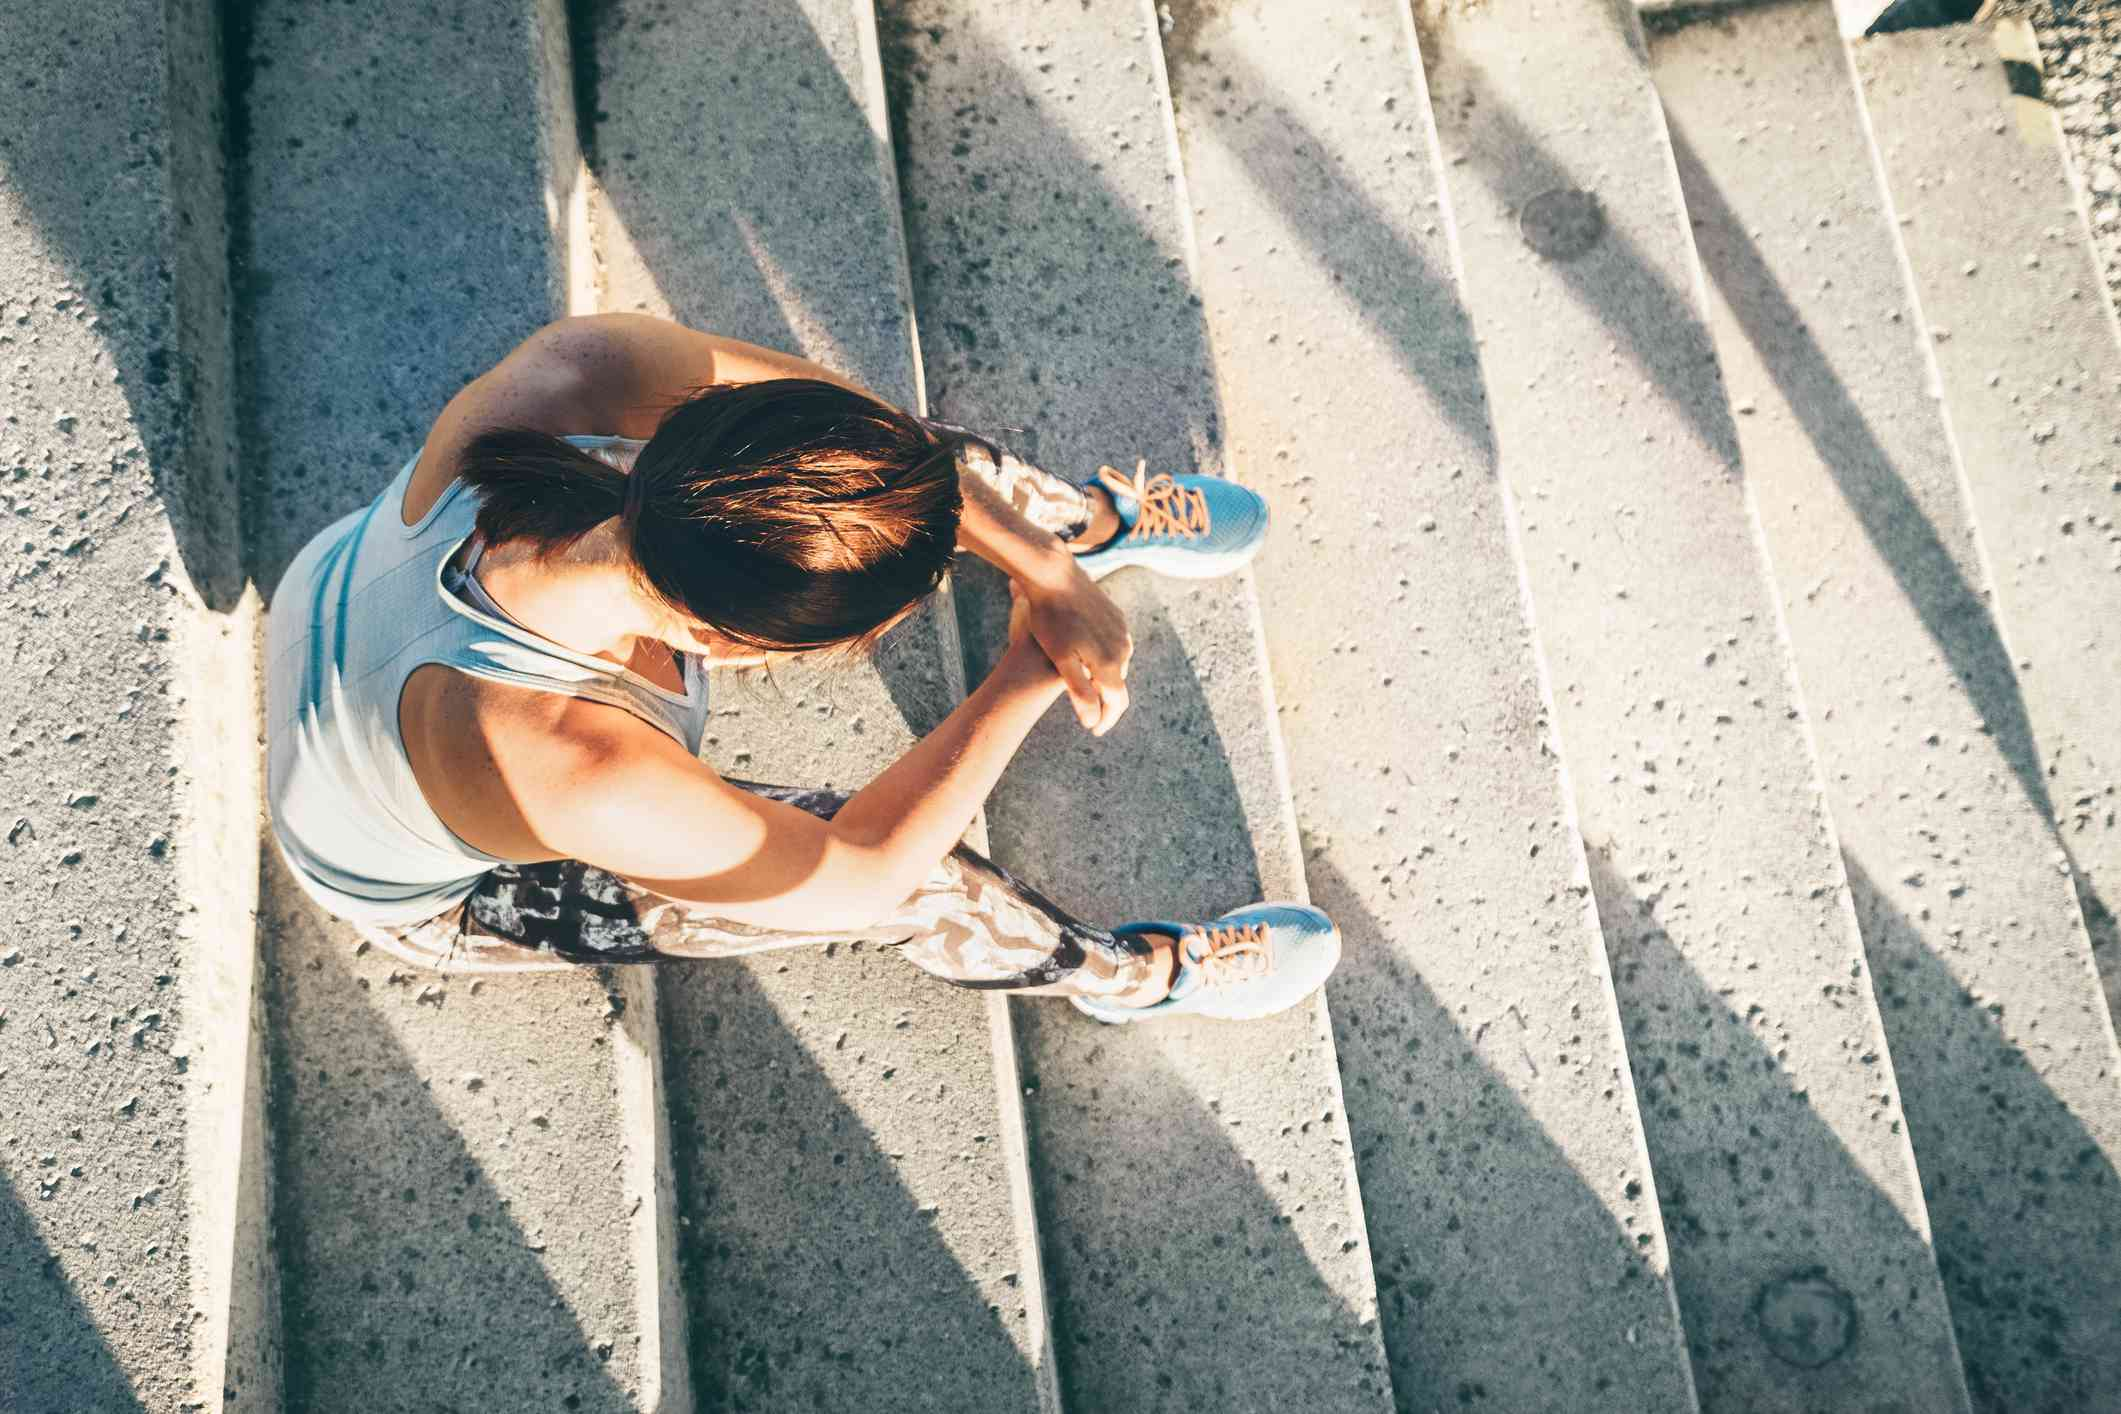 Woman rests on stairs after a run